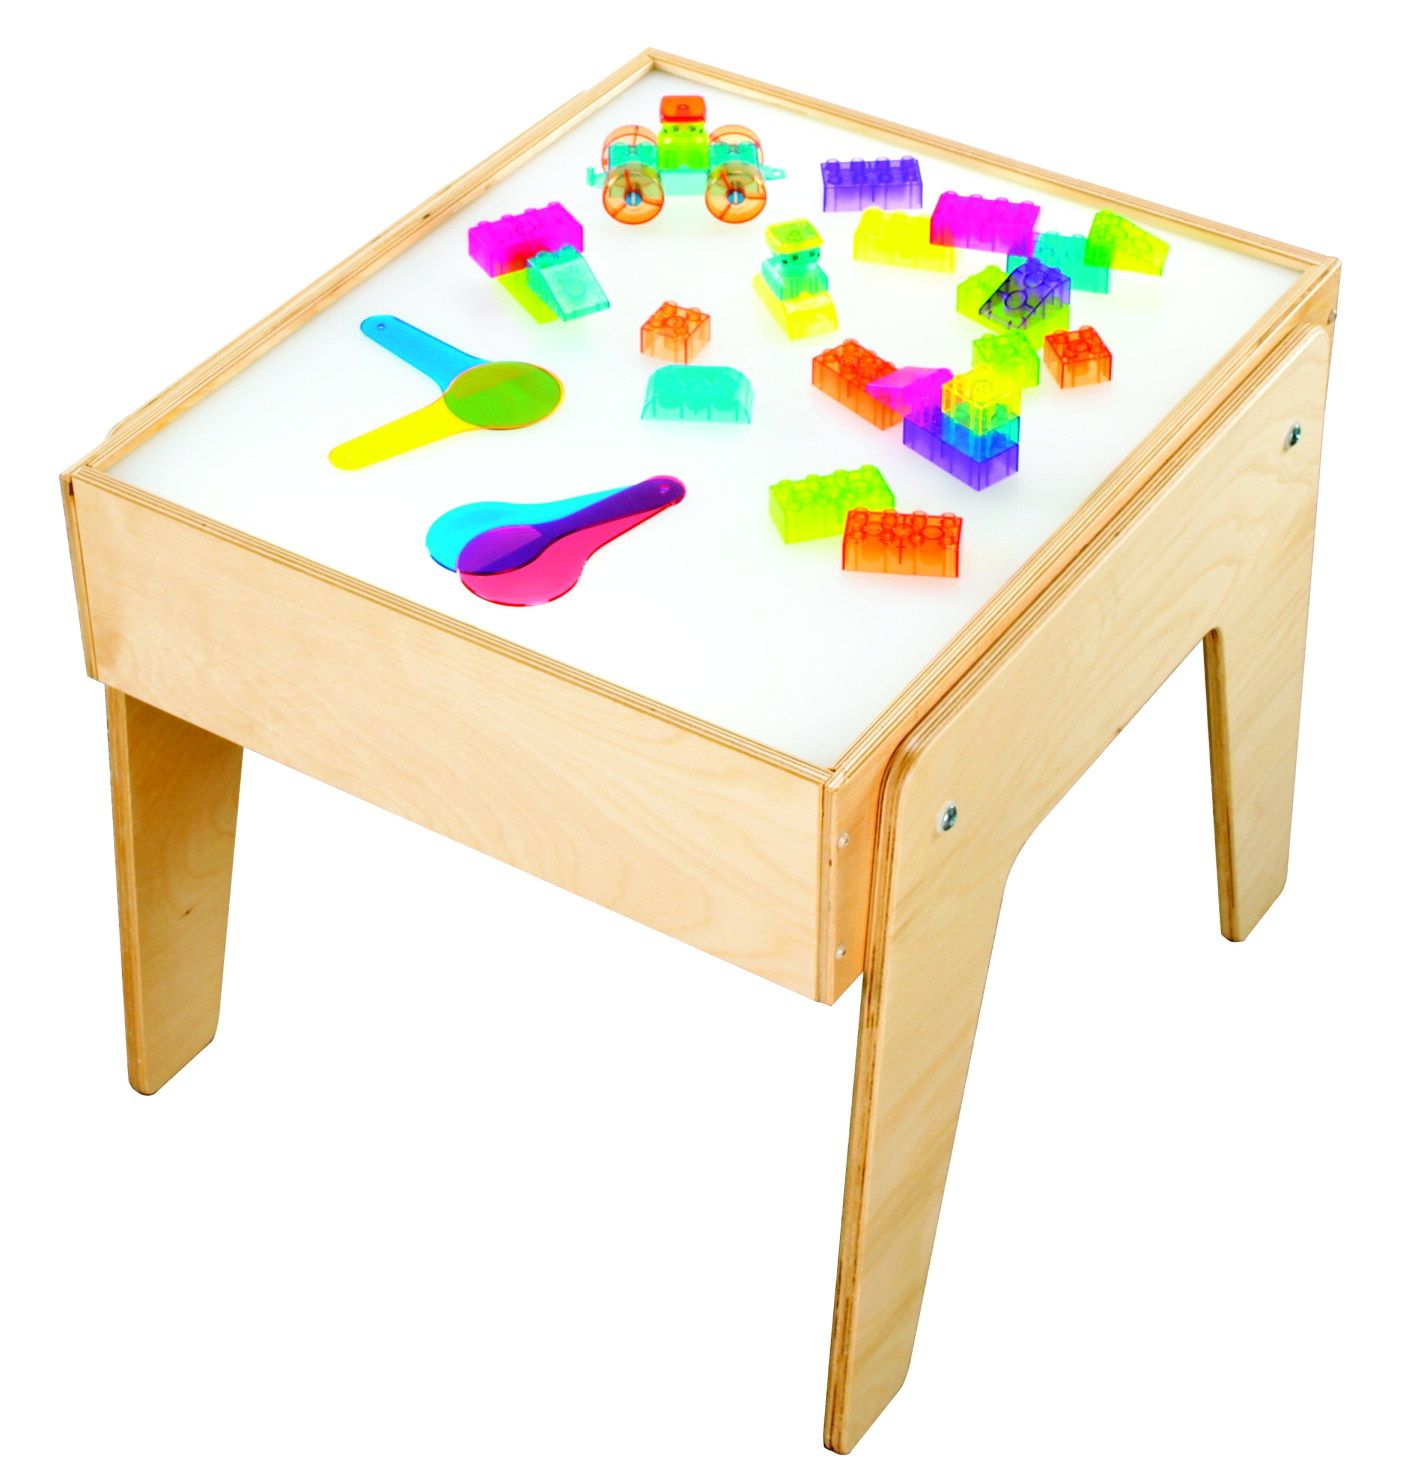 Child craft light table - Childcraft Mini Light Table Freestanding Table Fits Where Space Is Limited Table Can Be